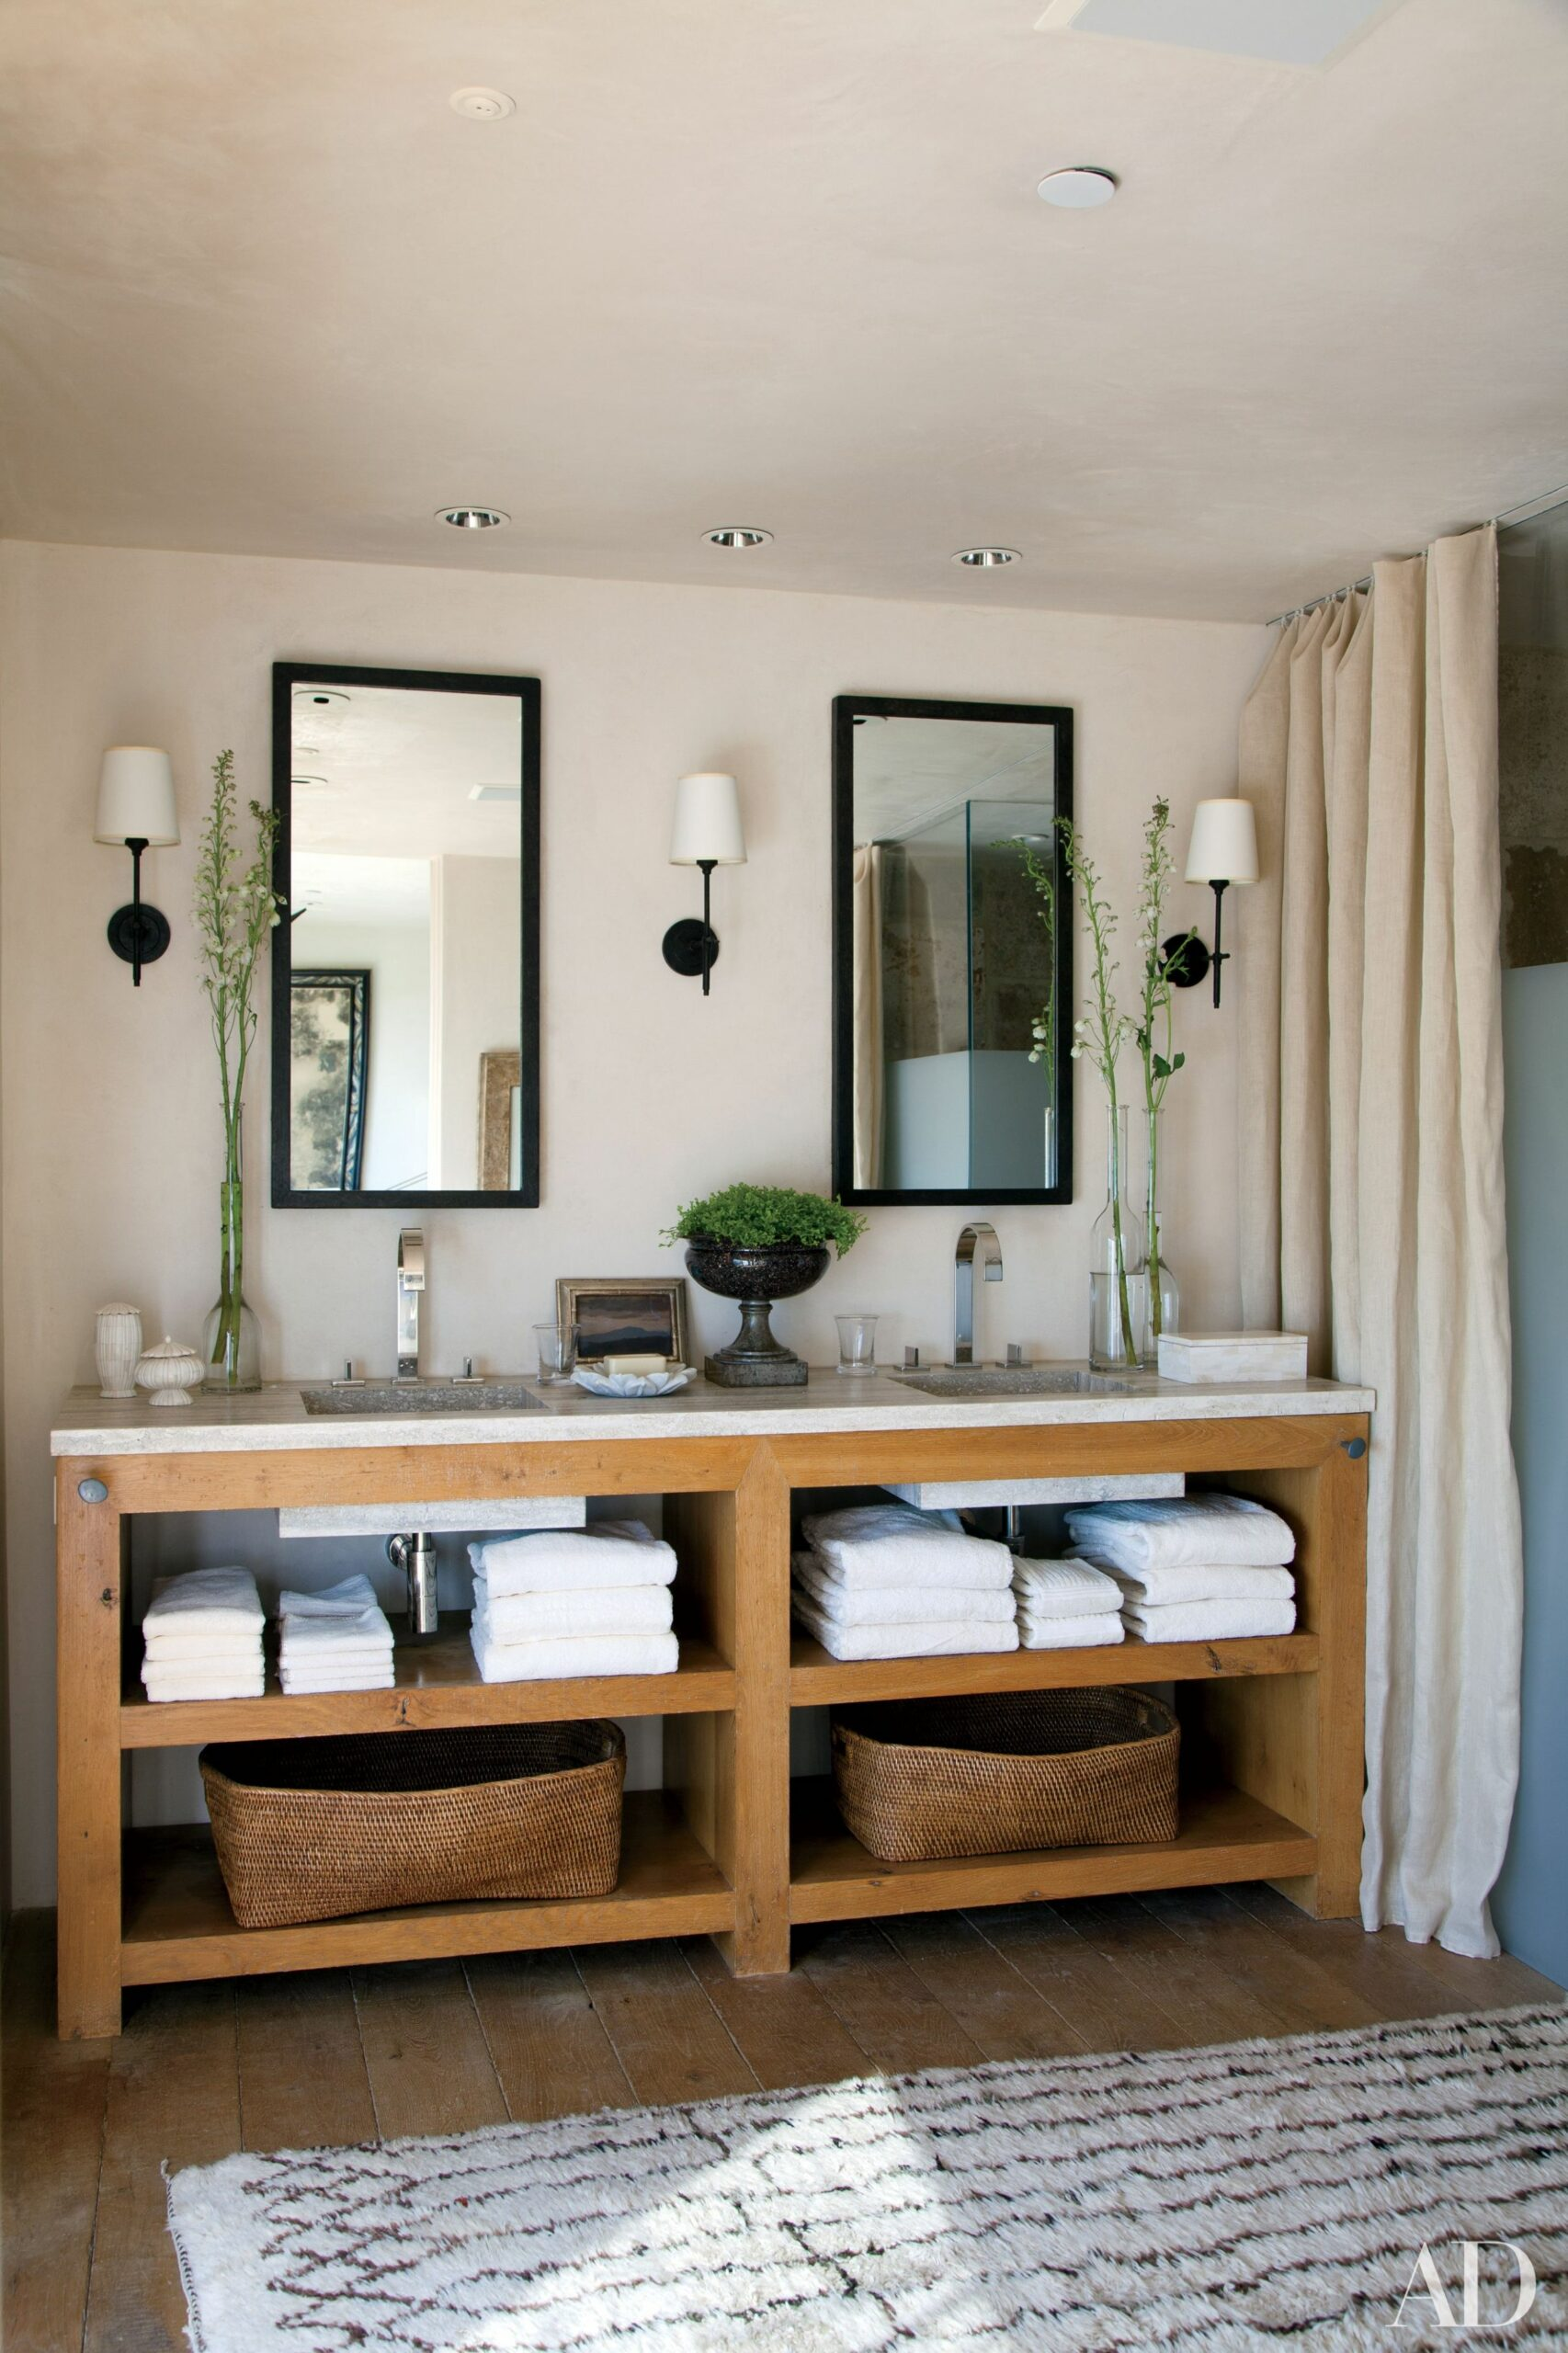 8 Great Ideas for Bathroom Double Vanities   Architectural Digest